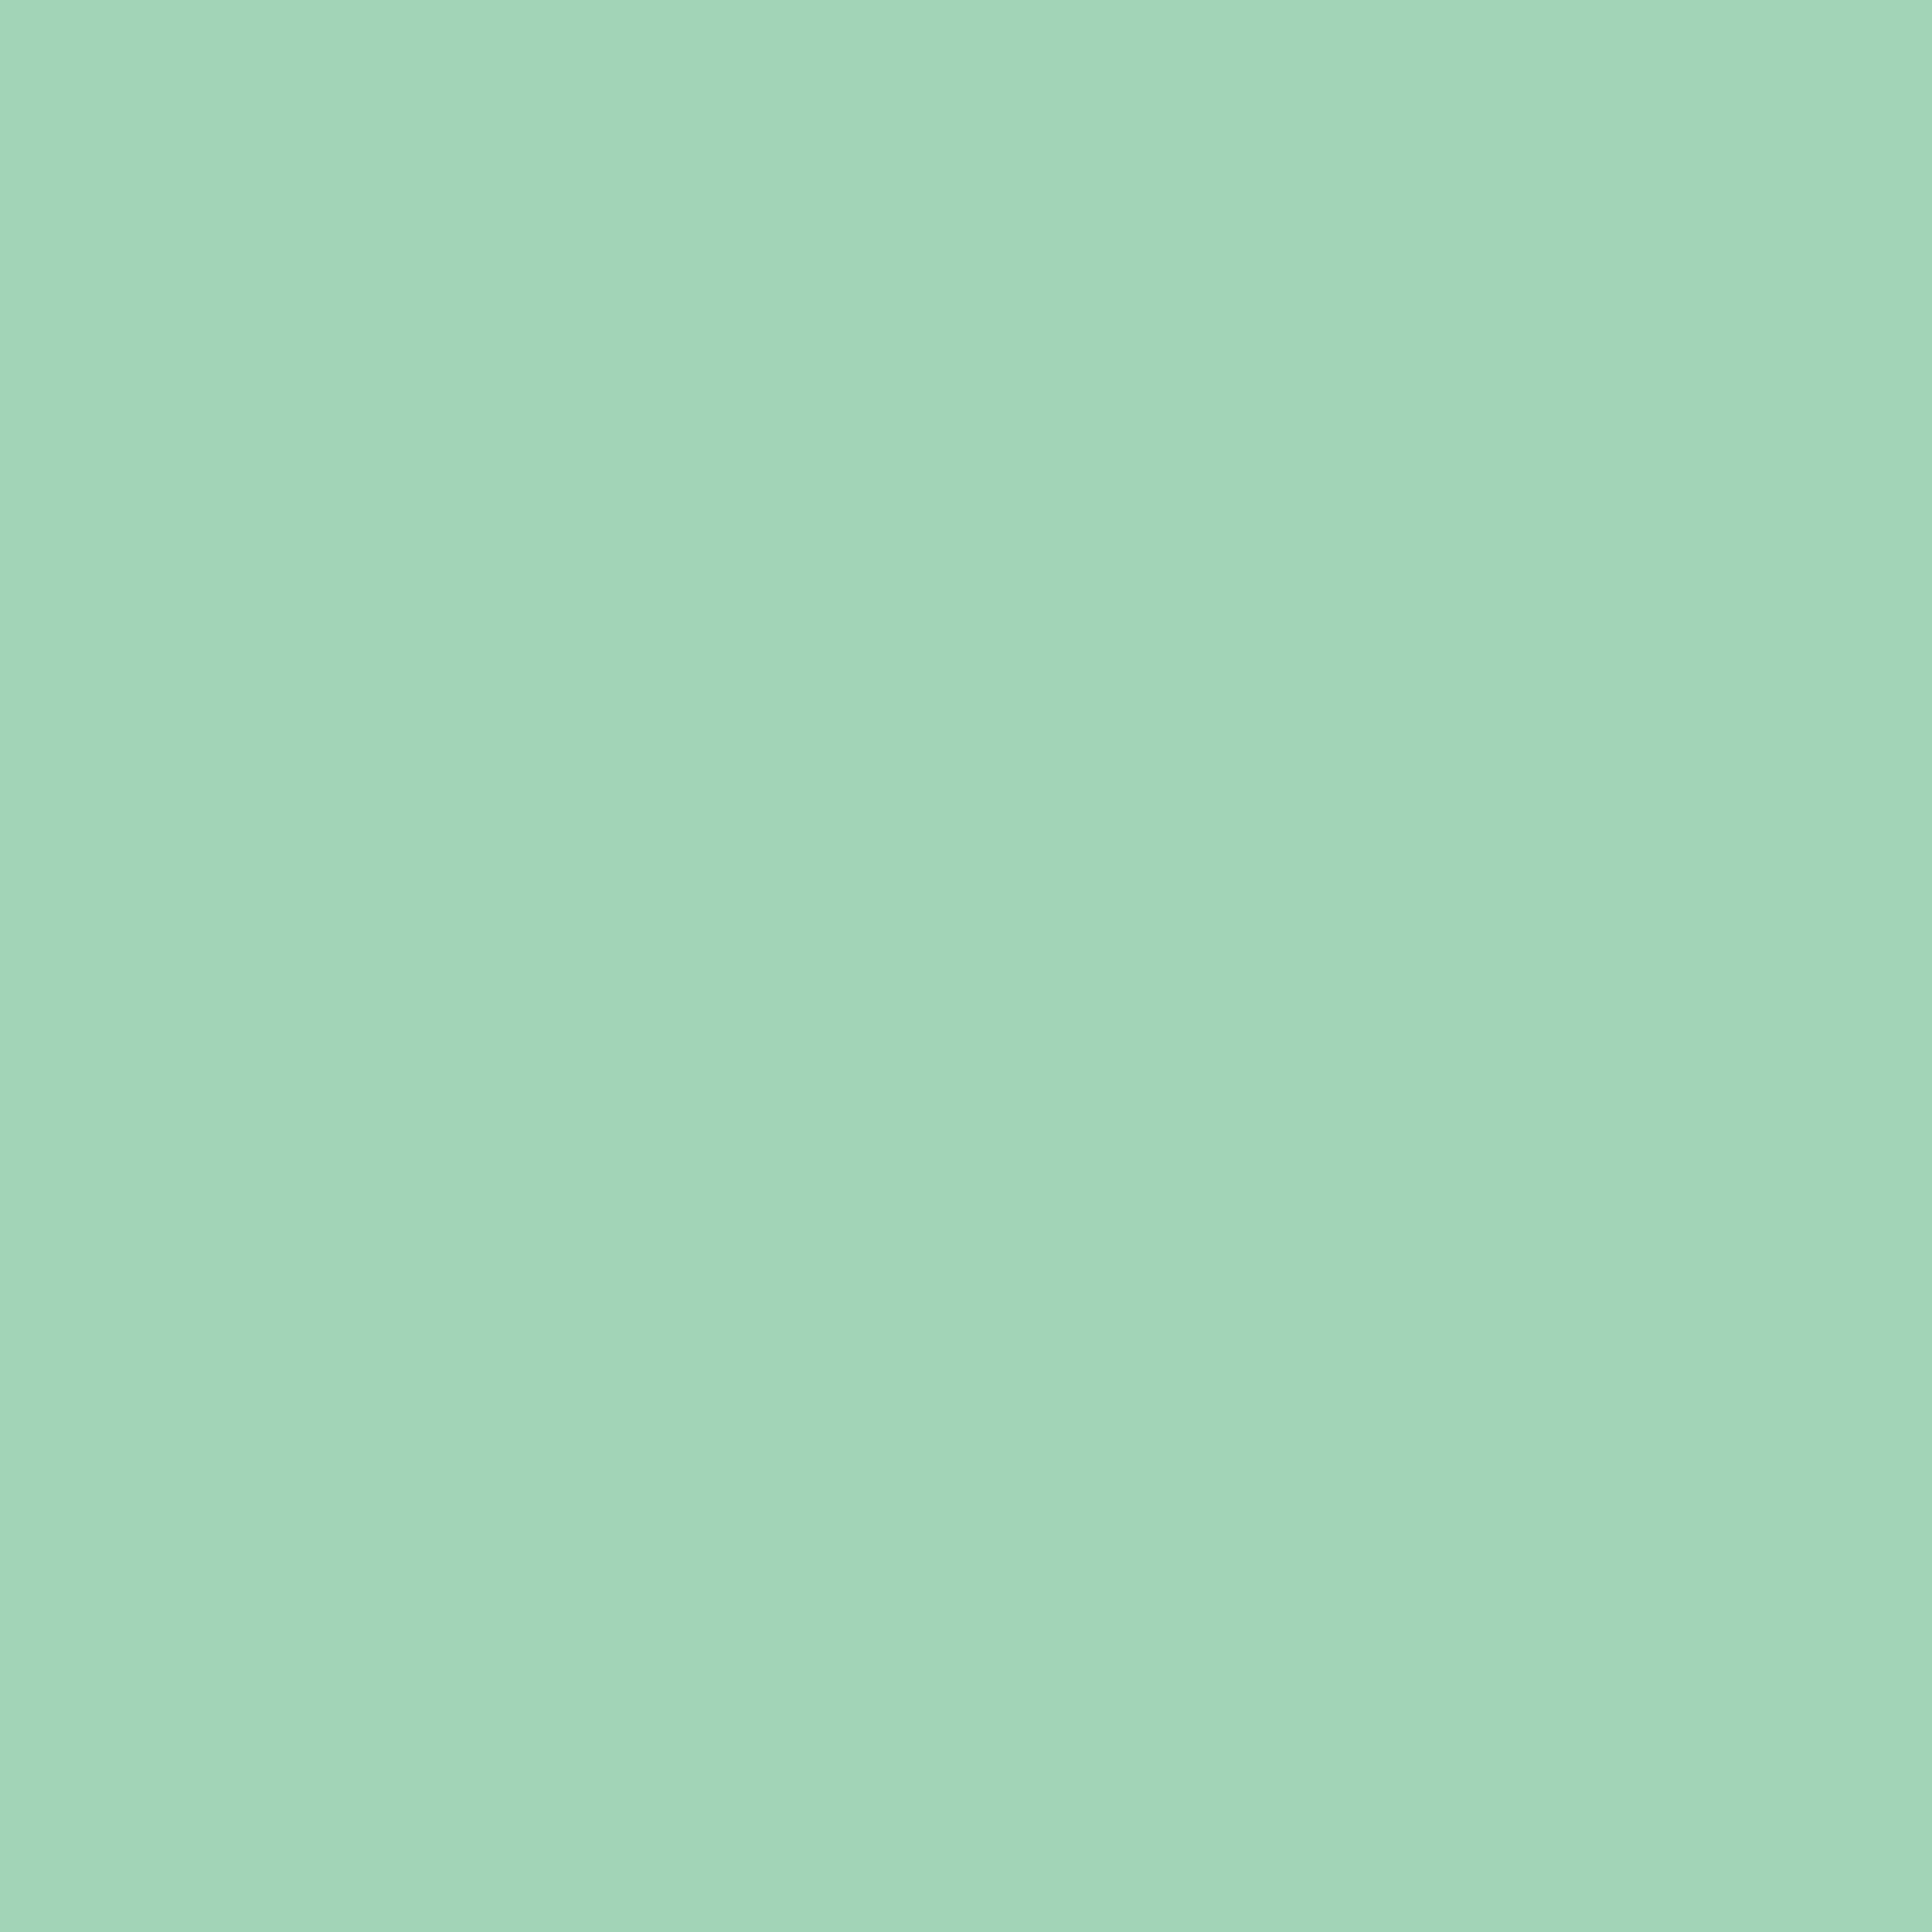 2048x2048 Turquoise Green Solid Color Background